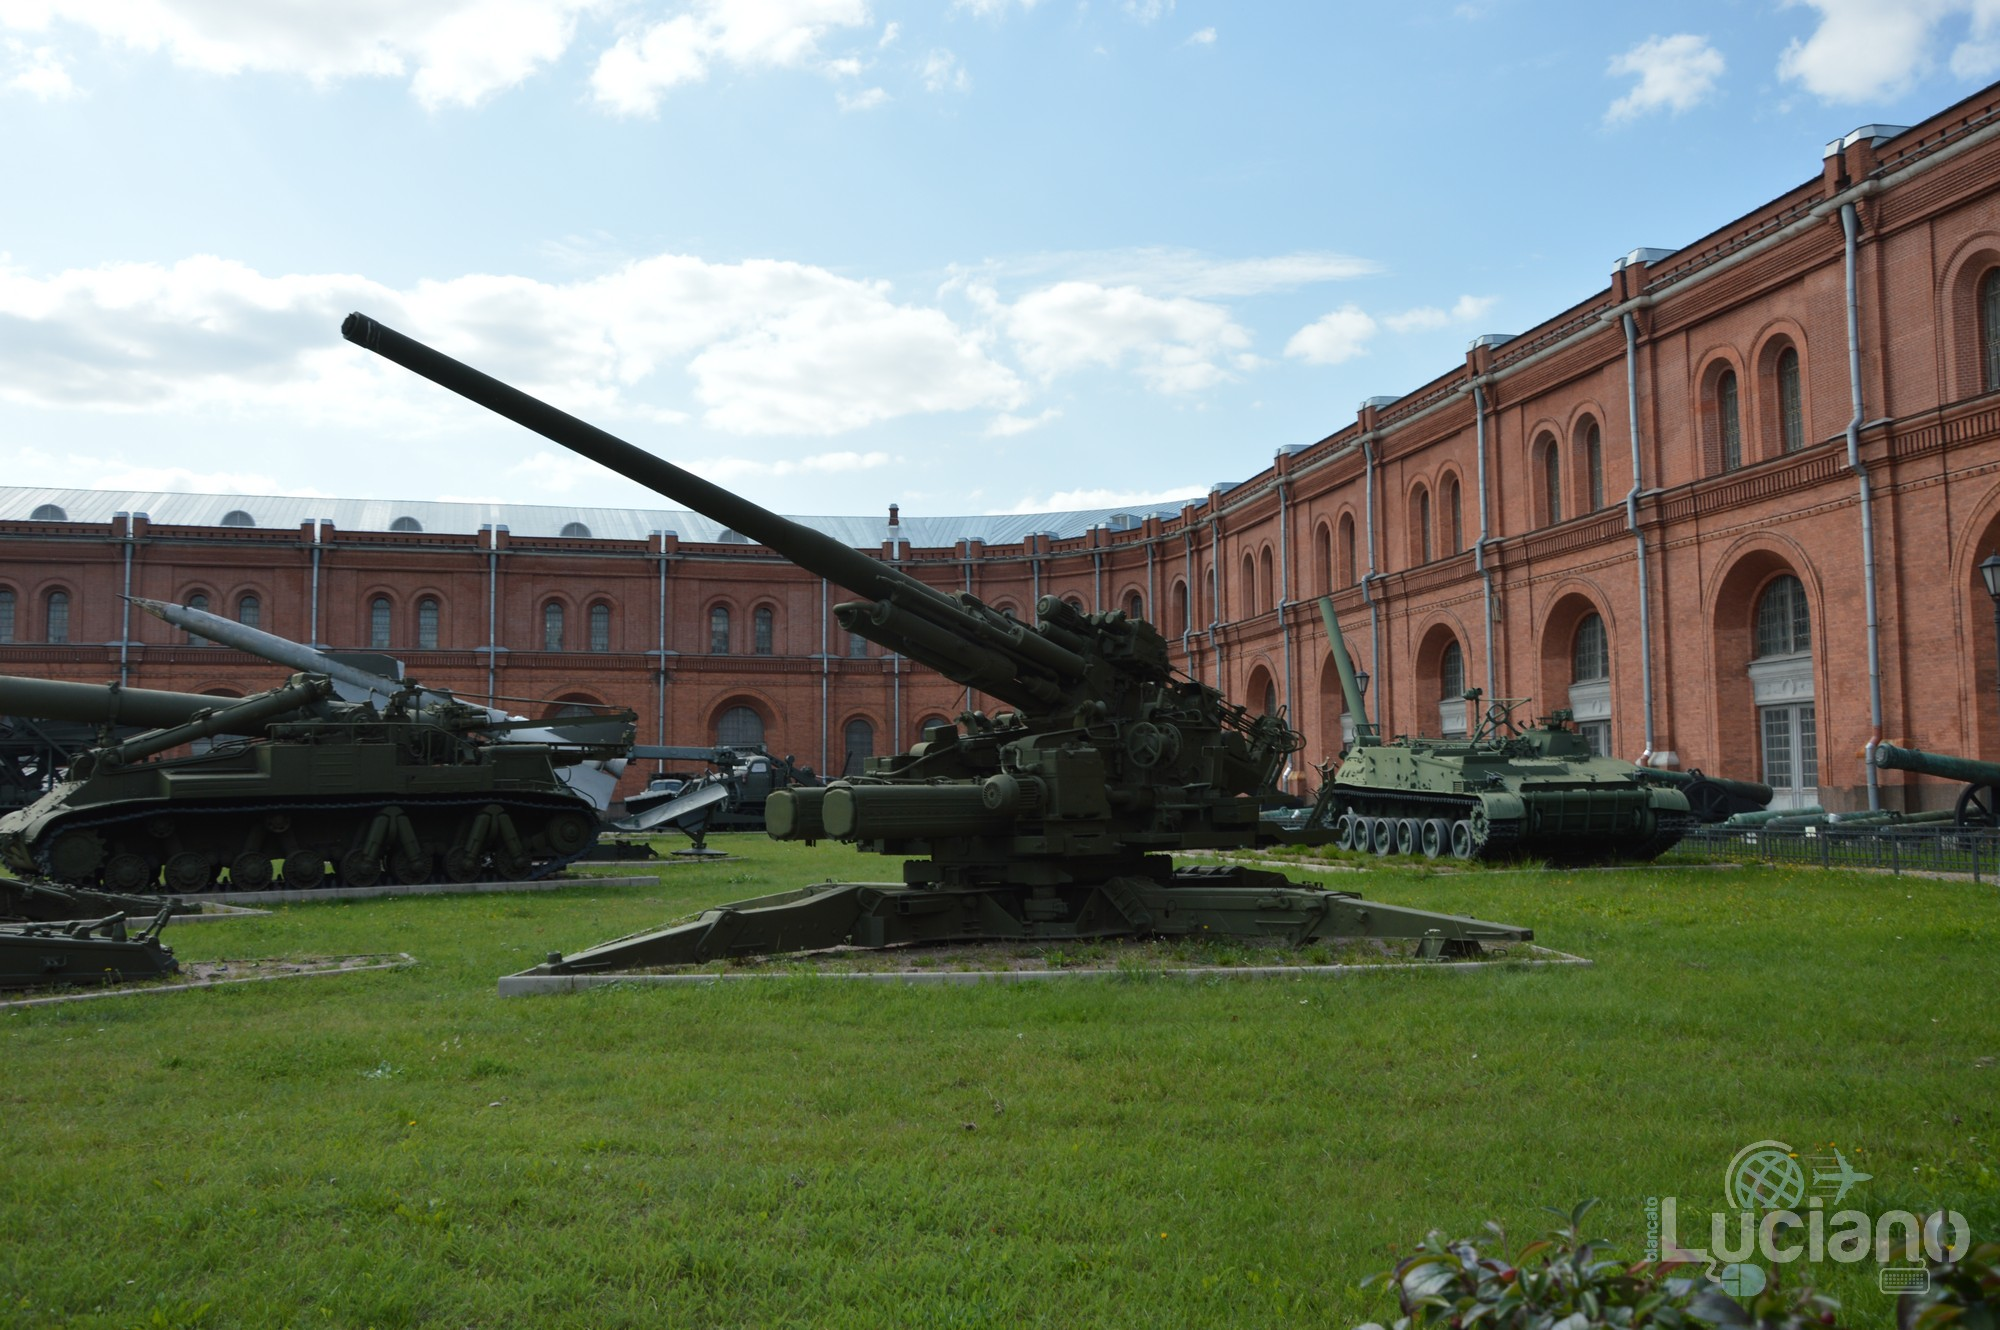 Military-Historical-Museum-of-Artillery-Engineer-and-Signal-Corps-St-Petersburg-Russia-Luciano-Blancato- (69)